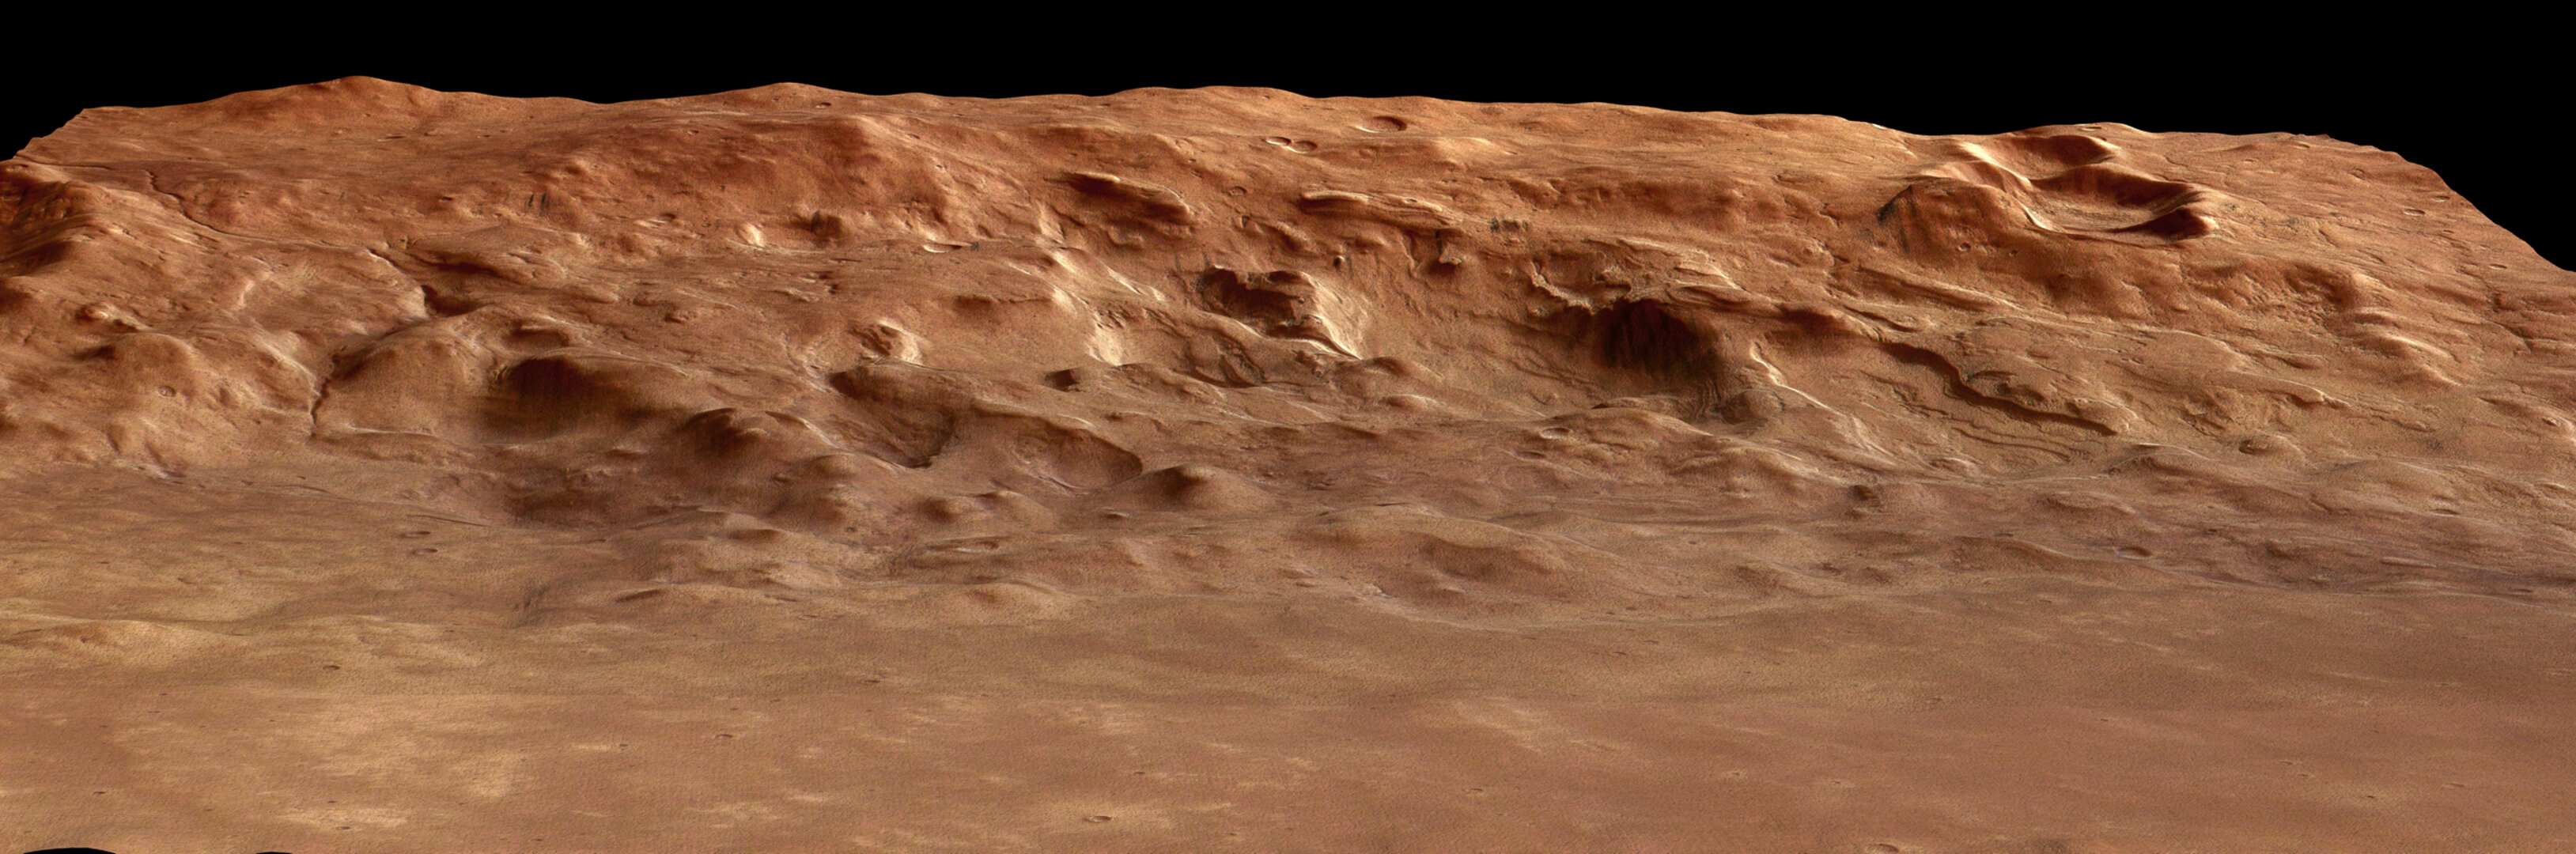 Perspective view of Hellas basin rim